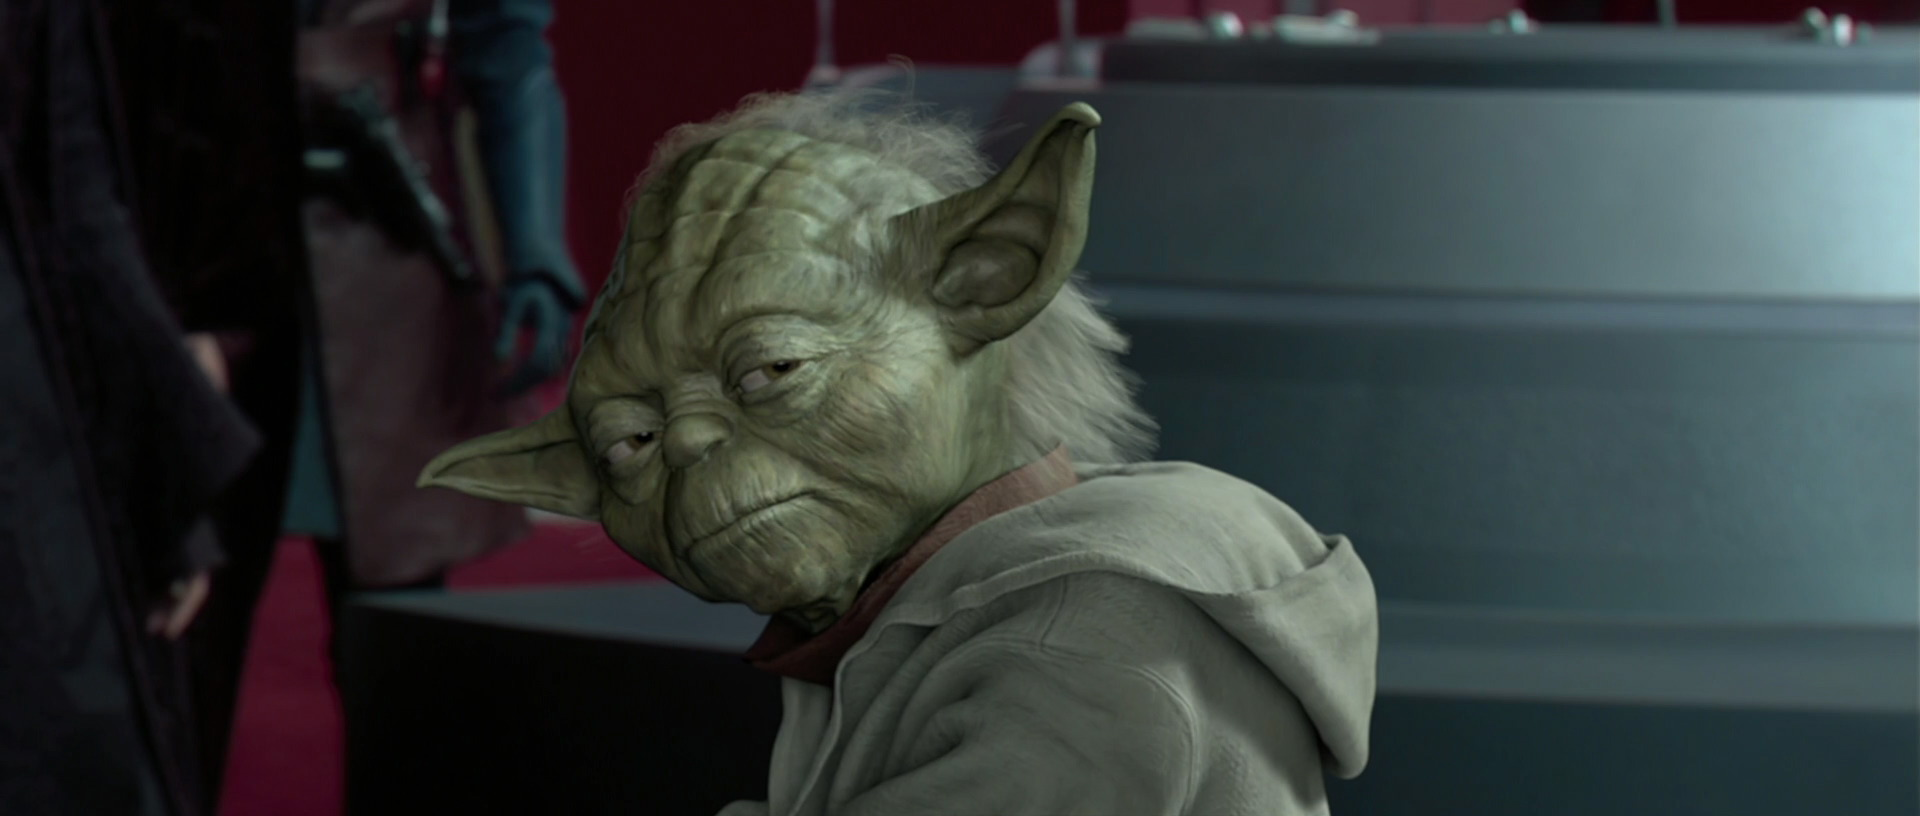 Star Wars: The Force Awakens Rumor - Will Yoda Return? - Overmental